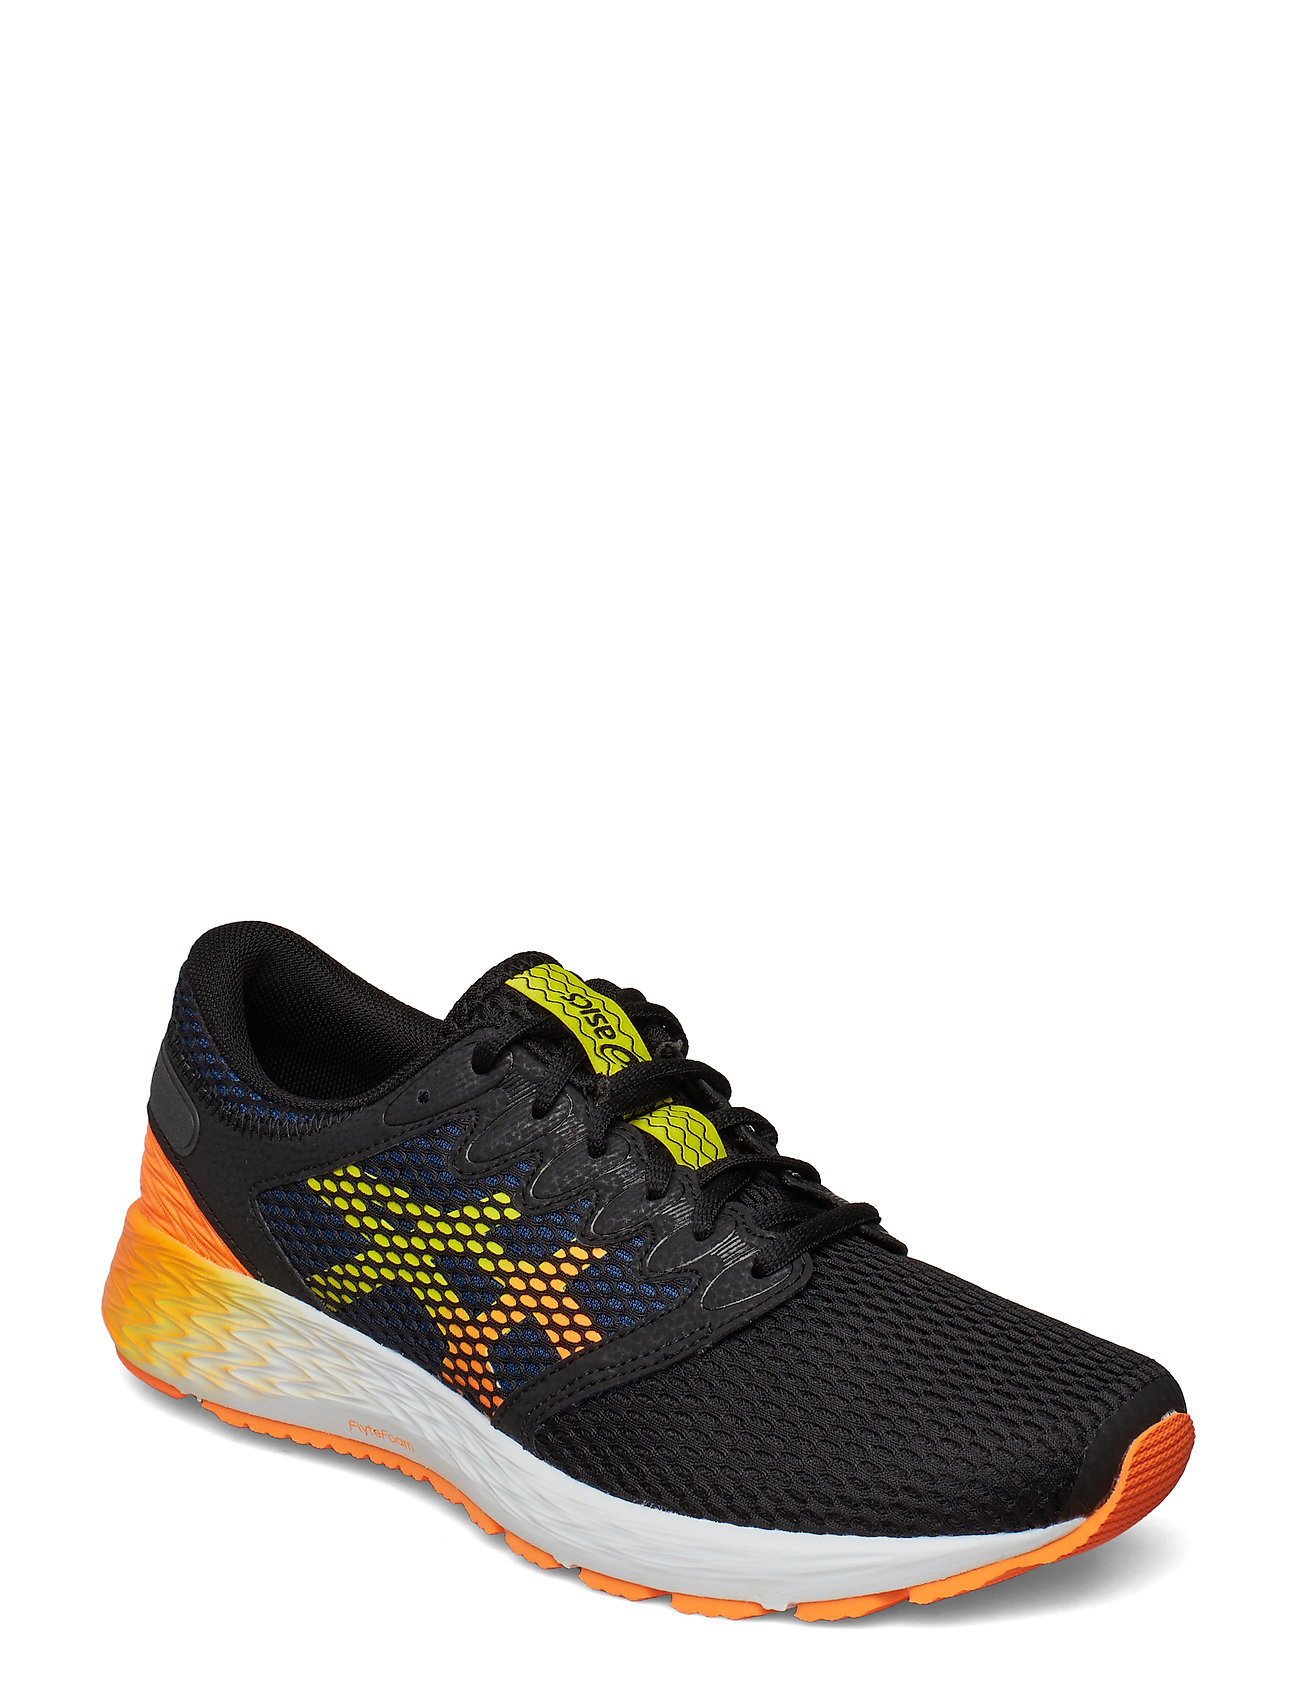 ASICS Roadhawk Ff 2 Shoes Sport Shoes Running Shoes Schwarz ASICS